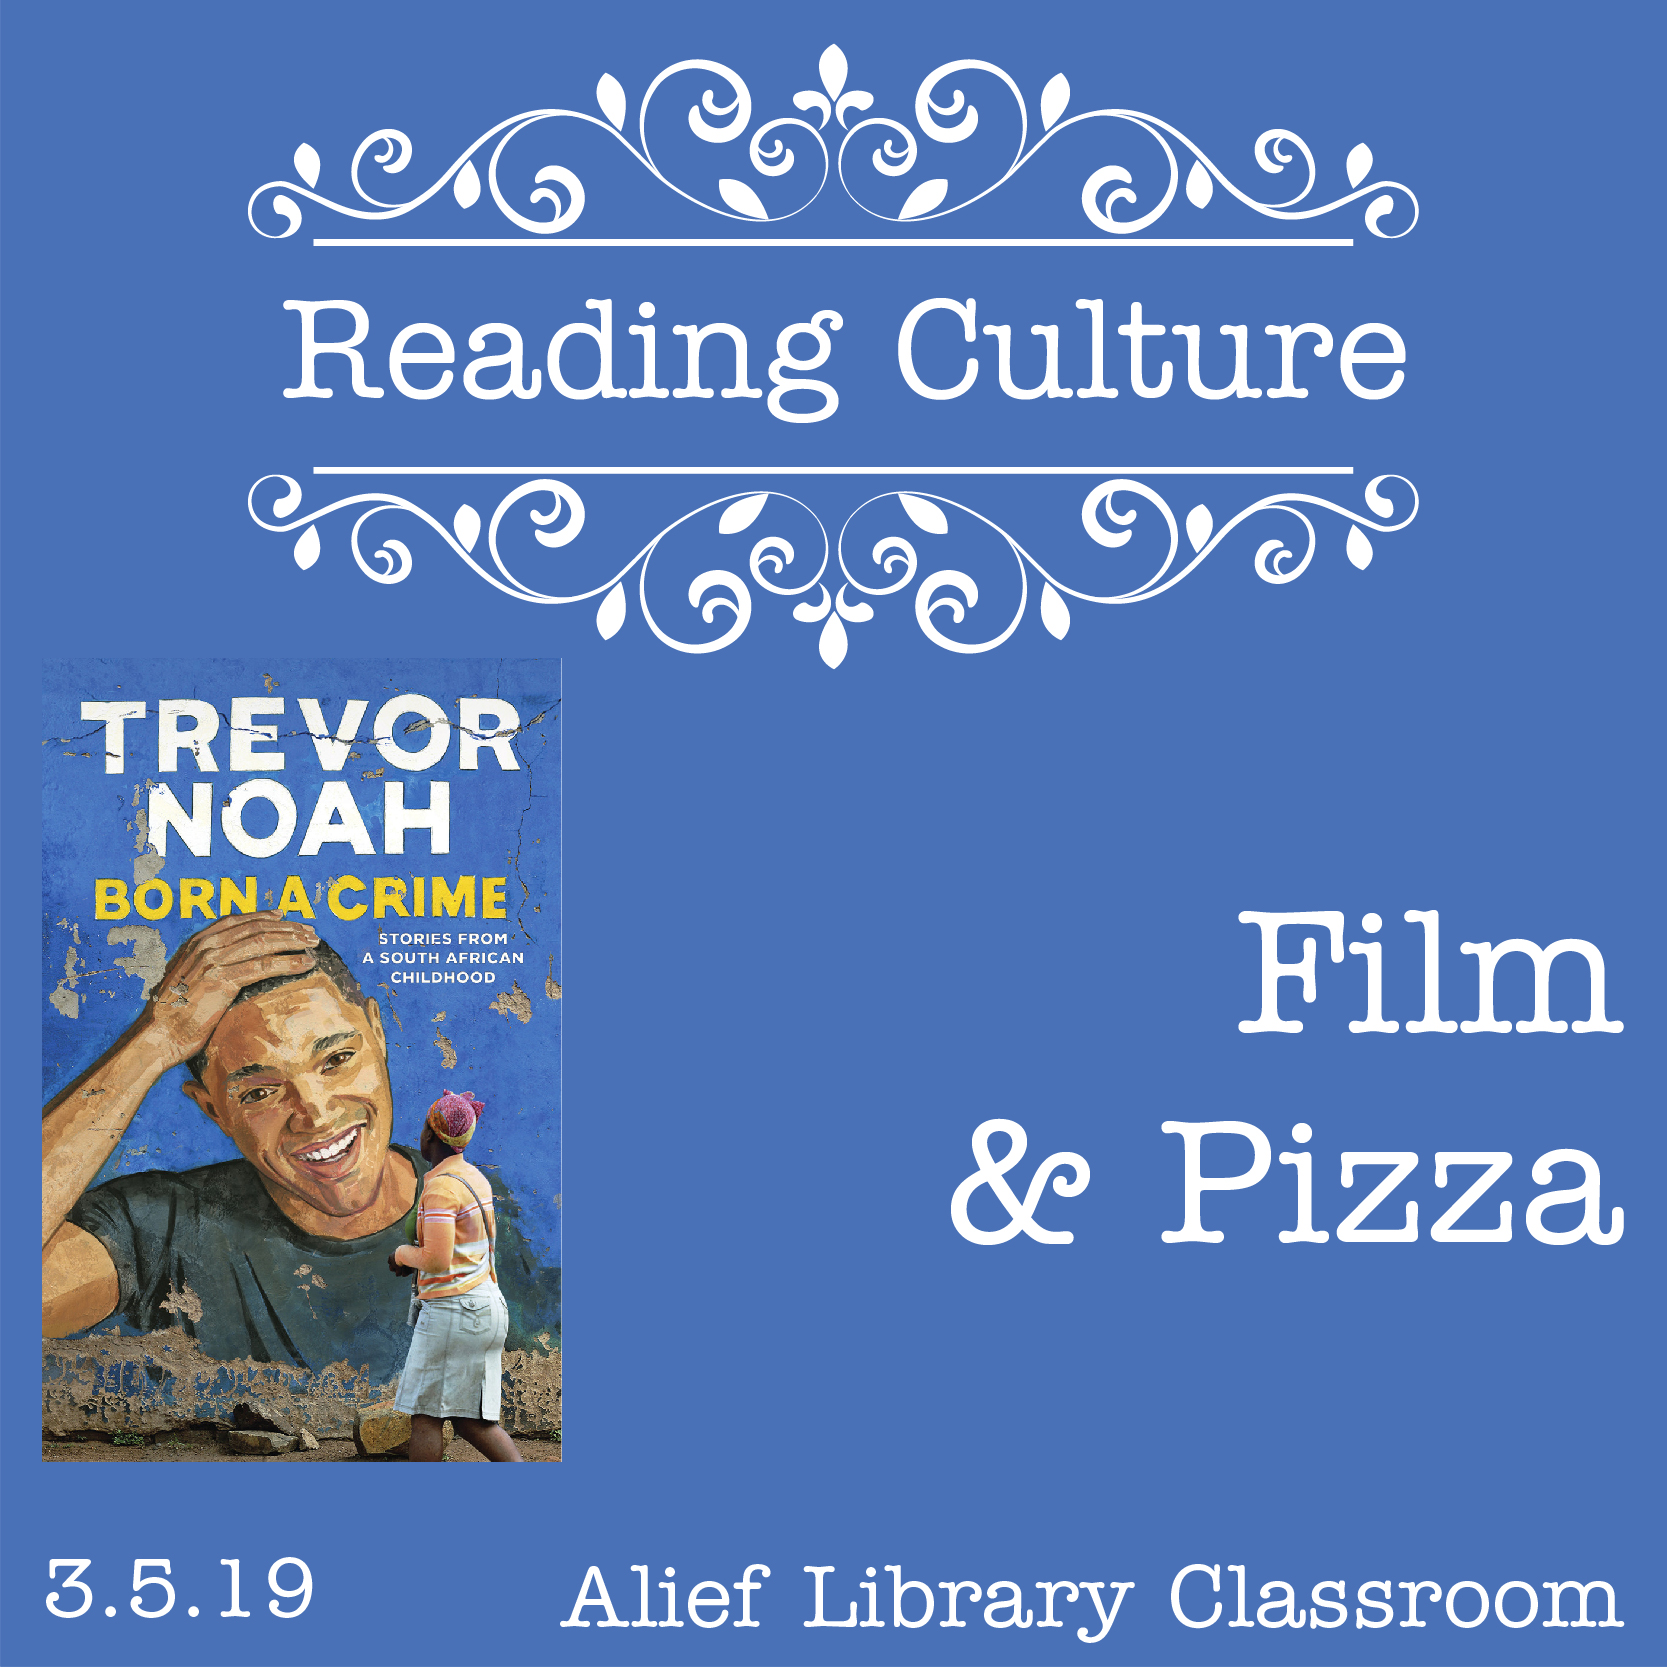 [AH] Film & Pizza with Professors Hasell and McGregor